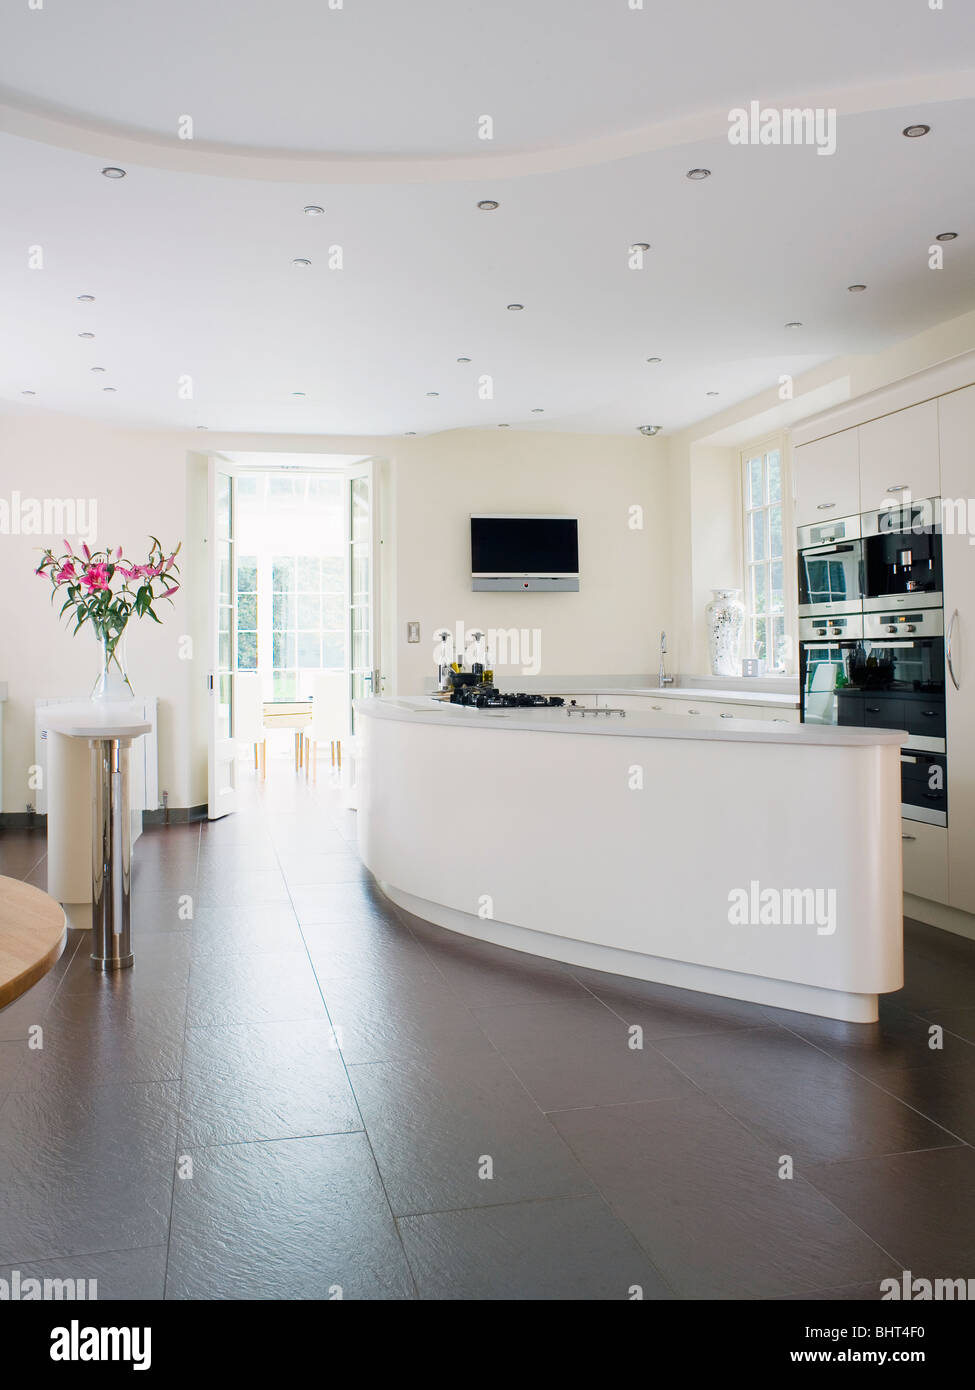 Slate flooring in large modern white kitchen with curved island unit ...